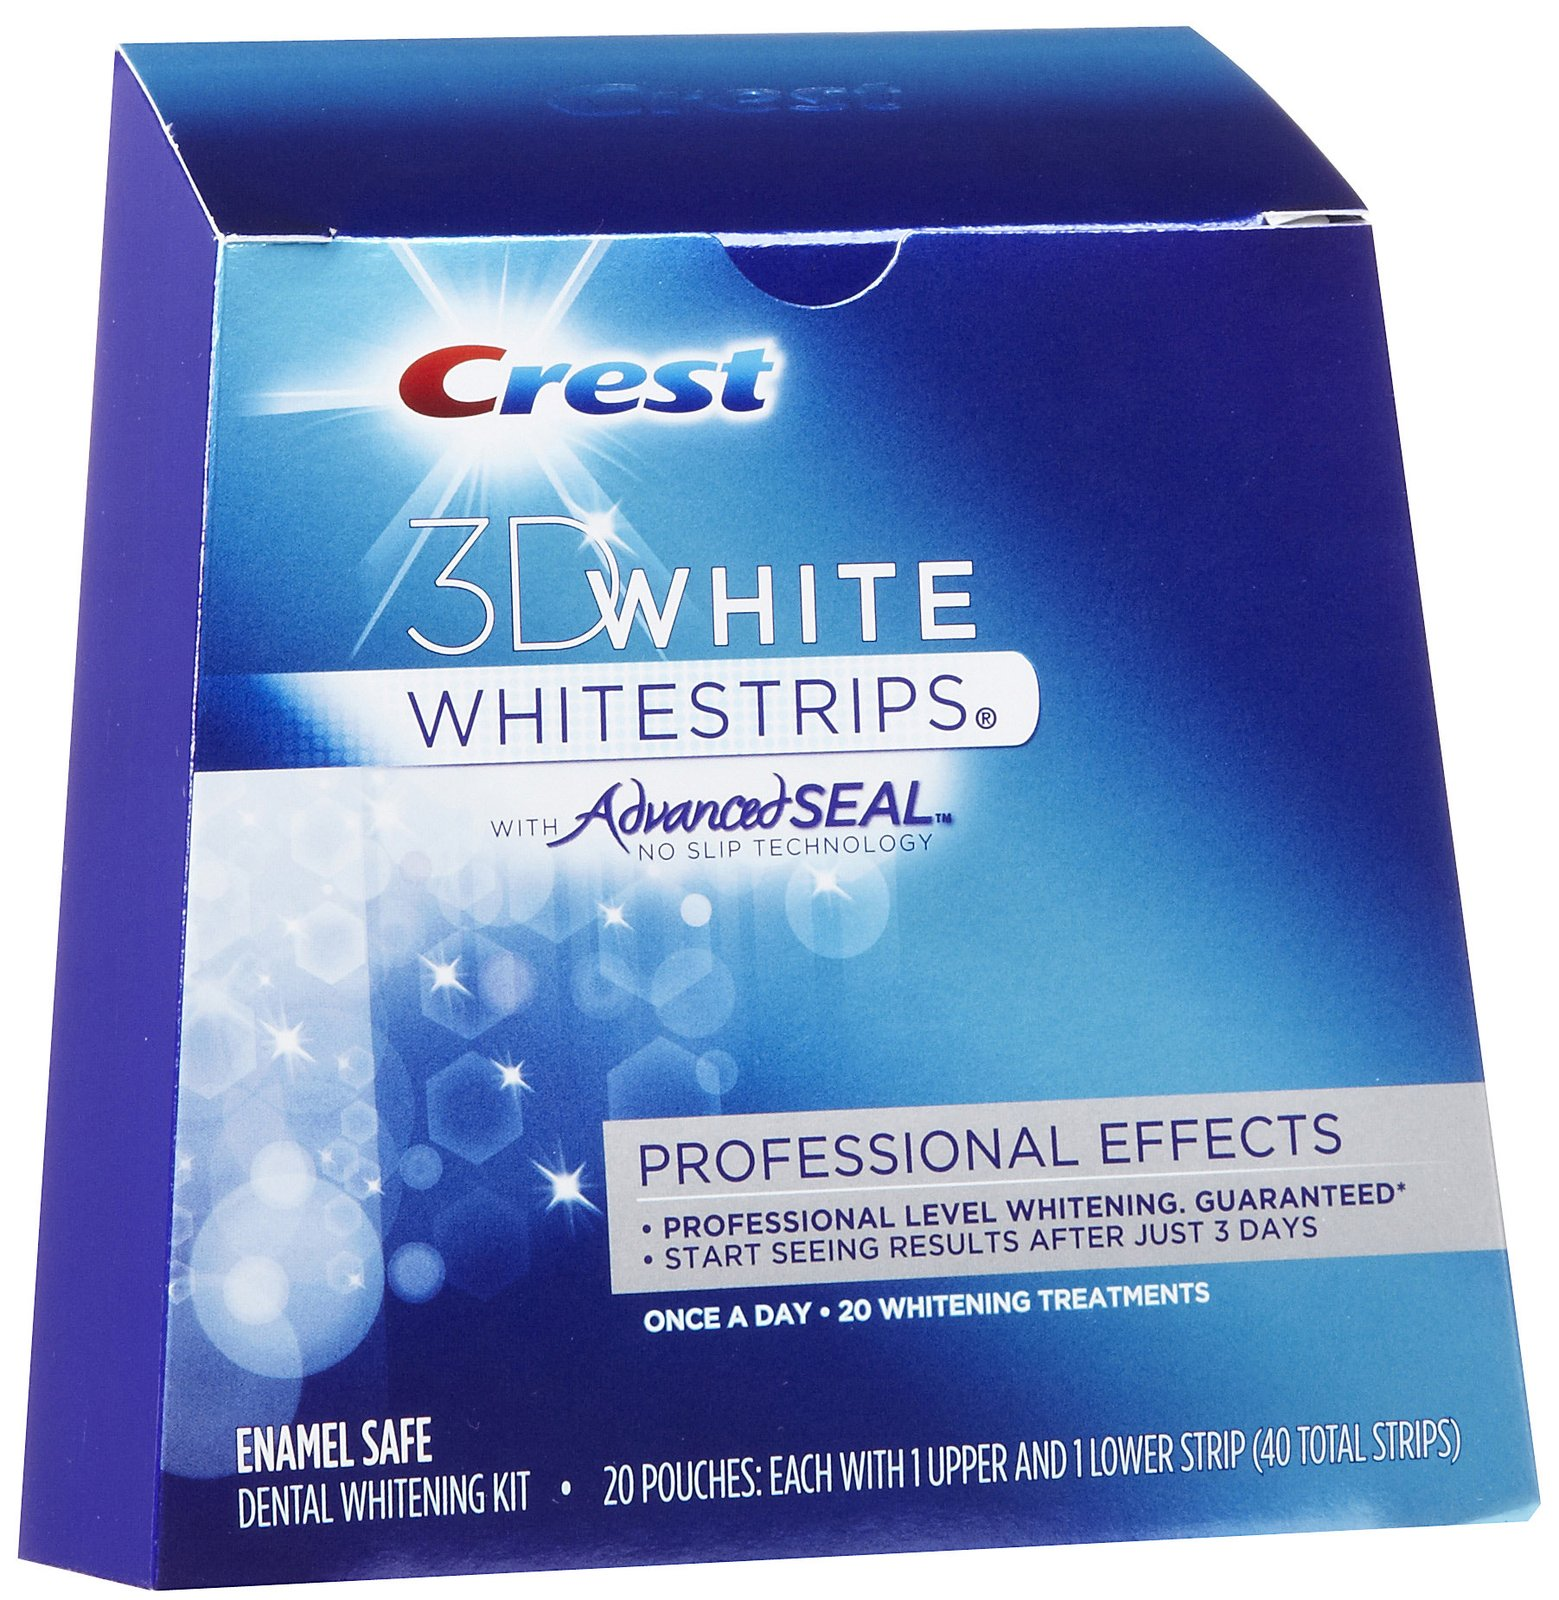 Crest 3D White And The E! Network Partner For An Epic